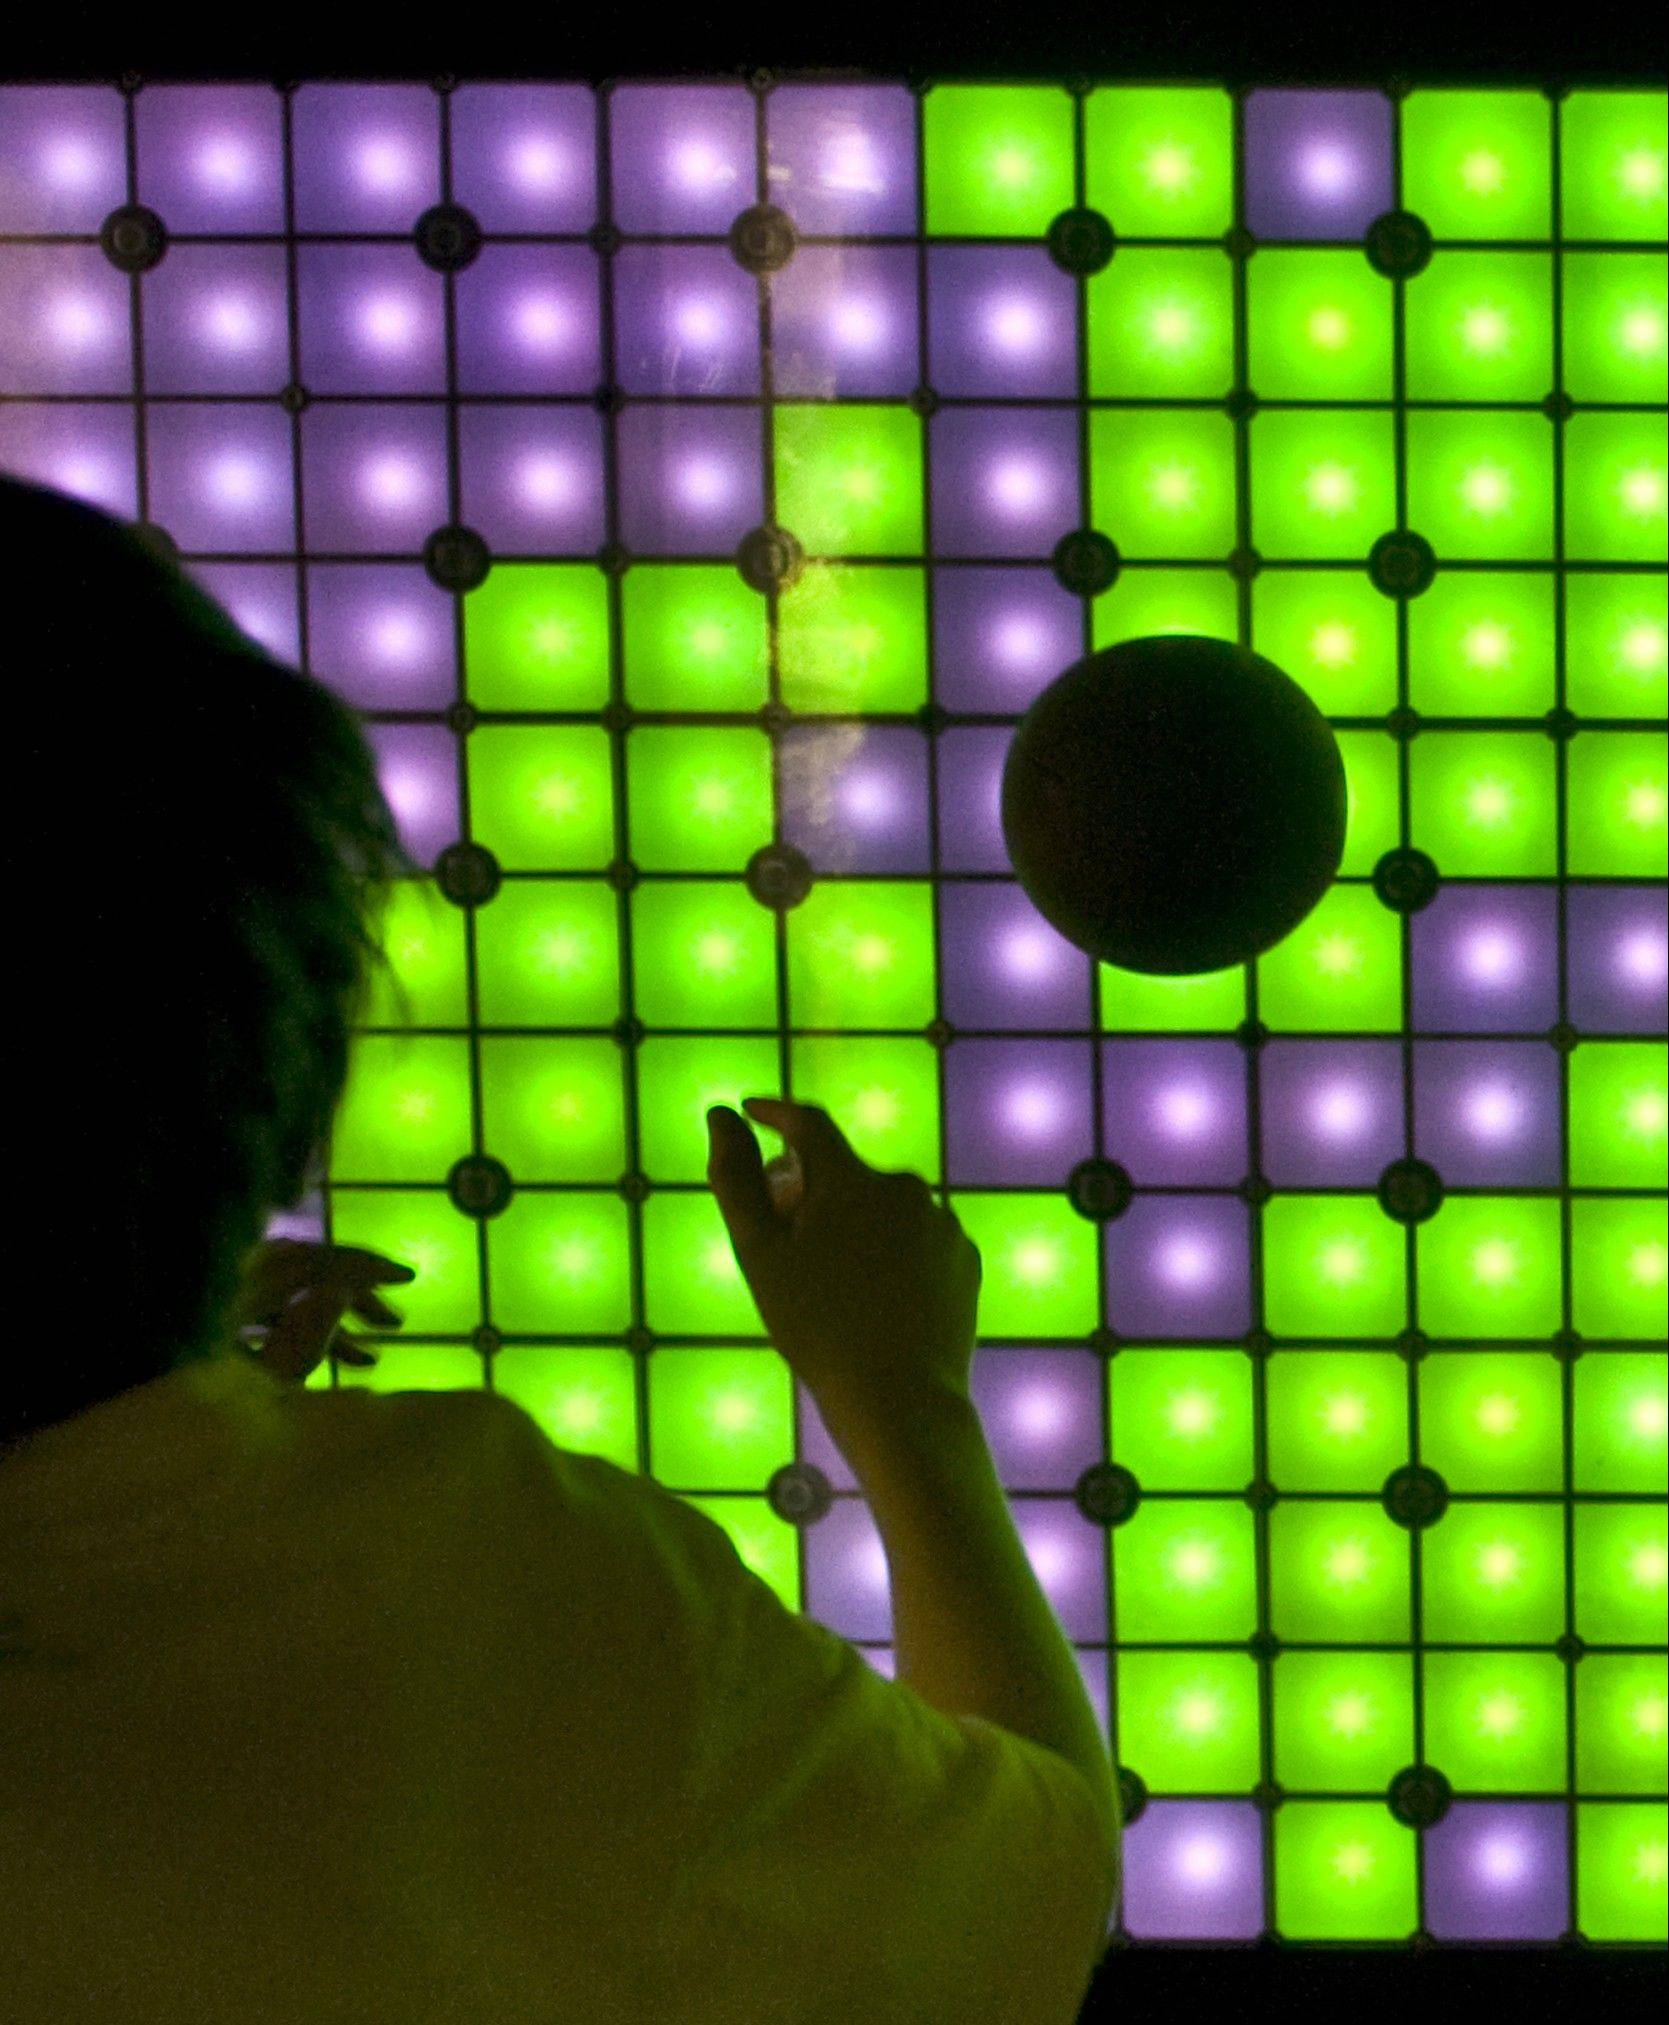 Jake Eisenstat uses a medicine ball to turn purple lights green in a game called Splot.